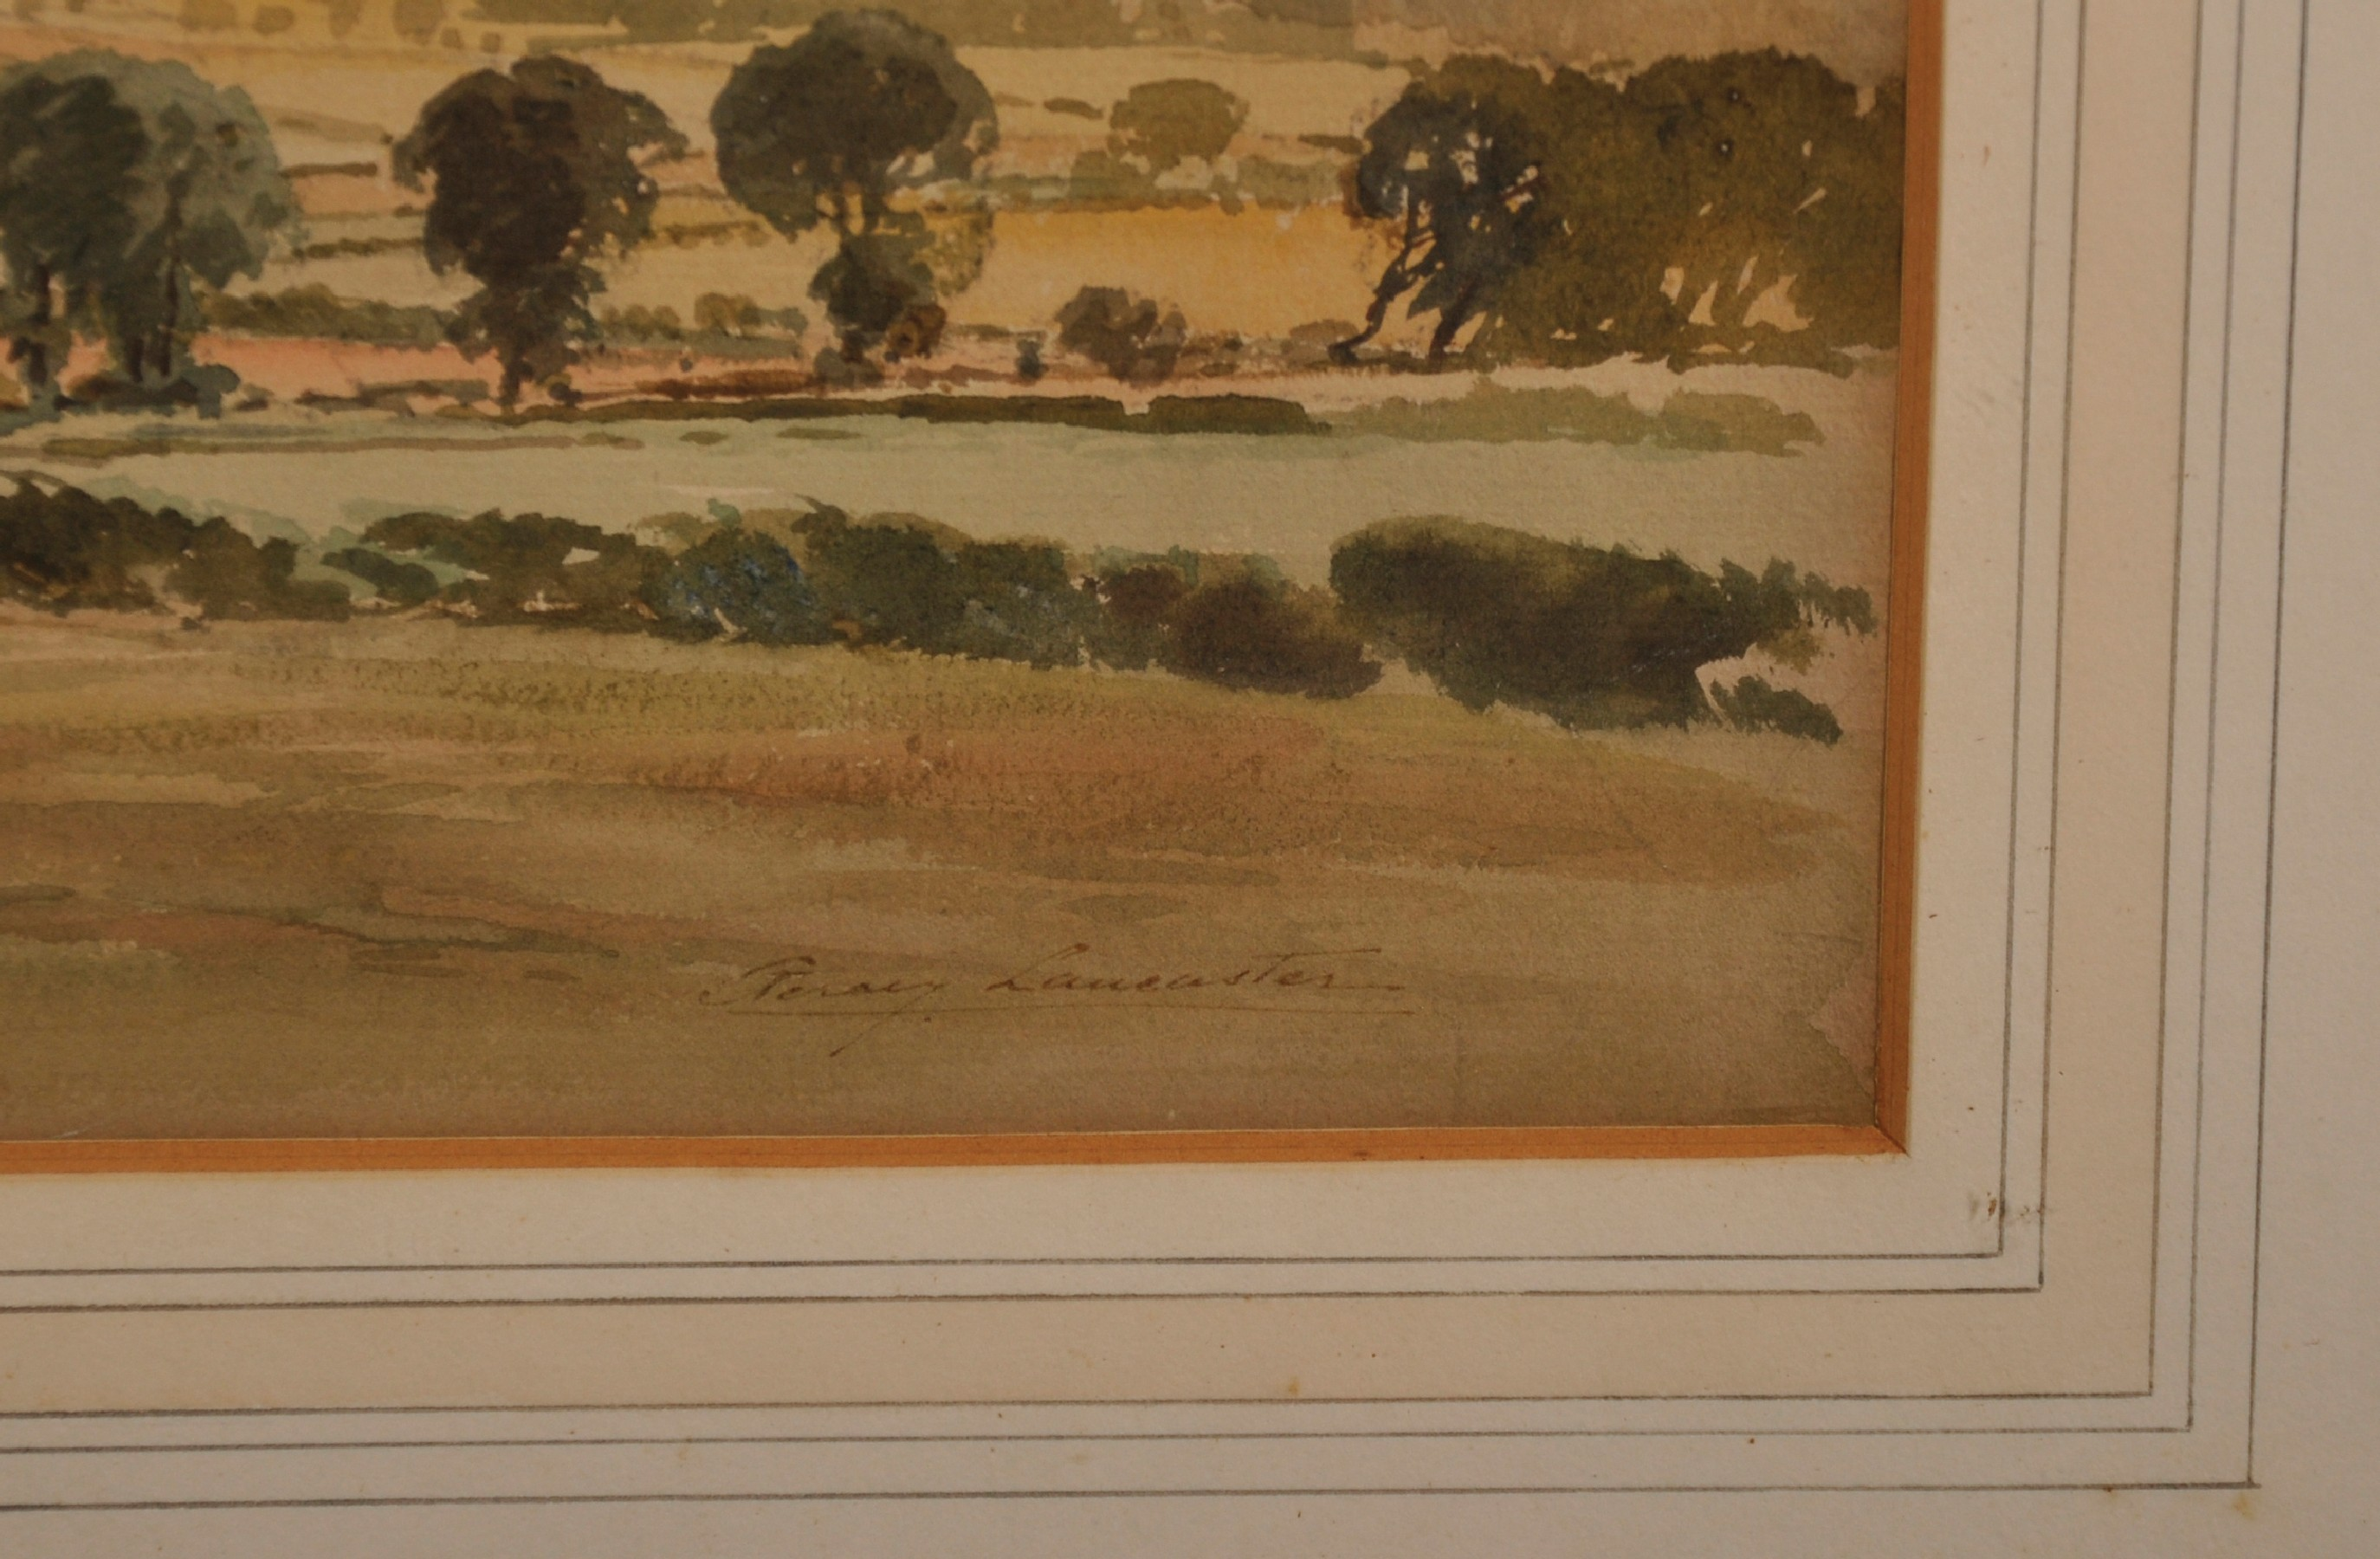 """Percy Lancaster (1878-1951) British. An Extensive Landscape, Watercolour, Signed, 12"""" x 25"""". - Image 3 of 4"""